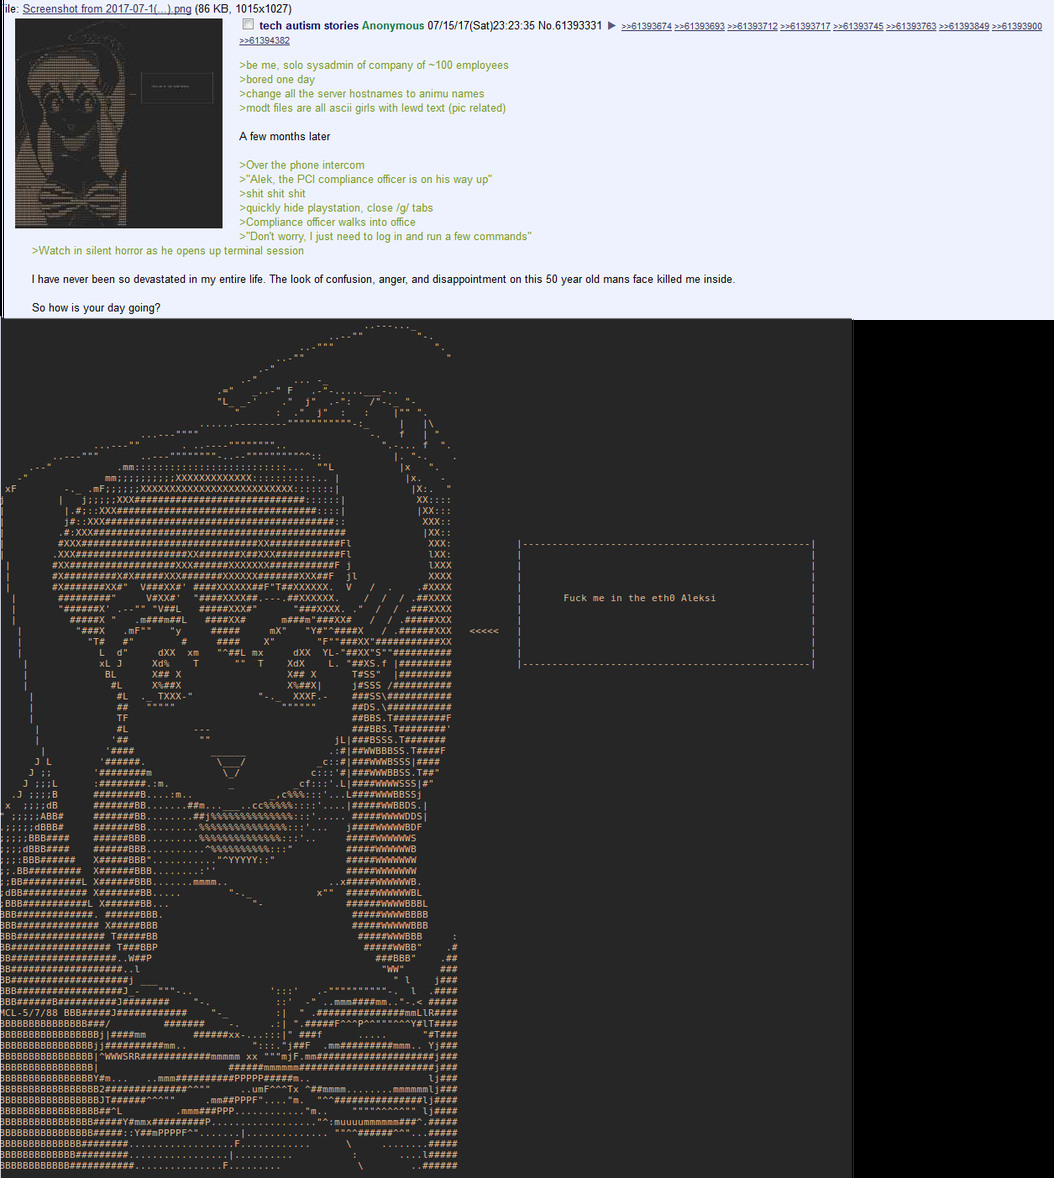 dongs in the ascii - Meme by batchc :) Memedroid